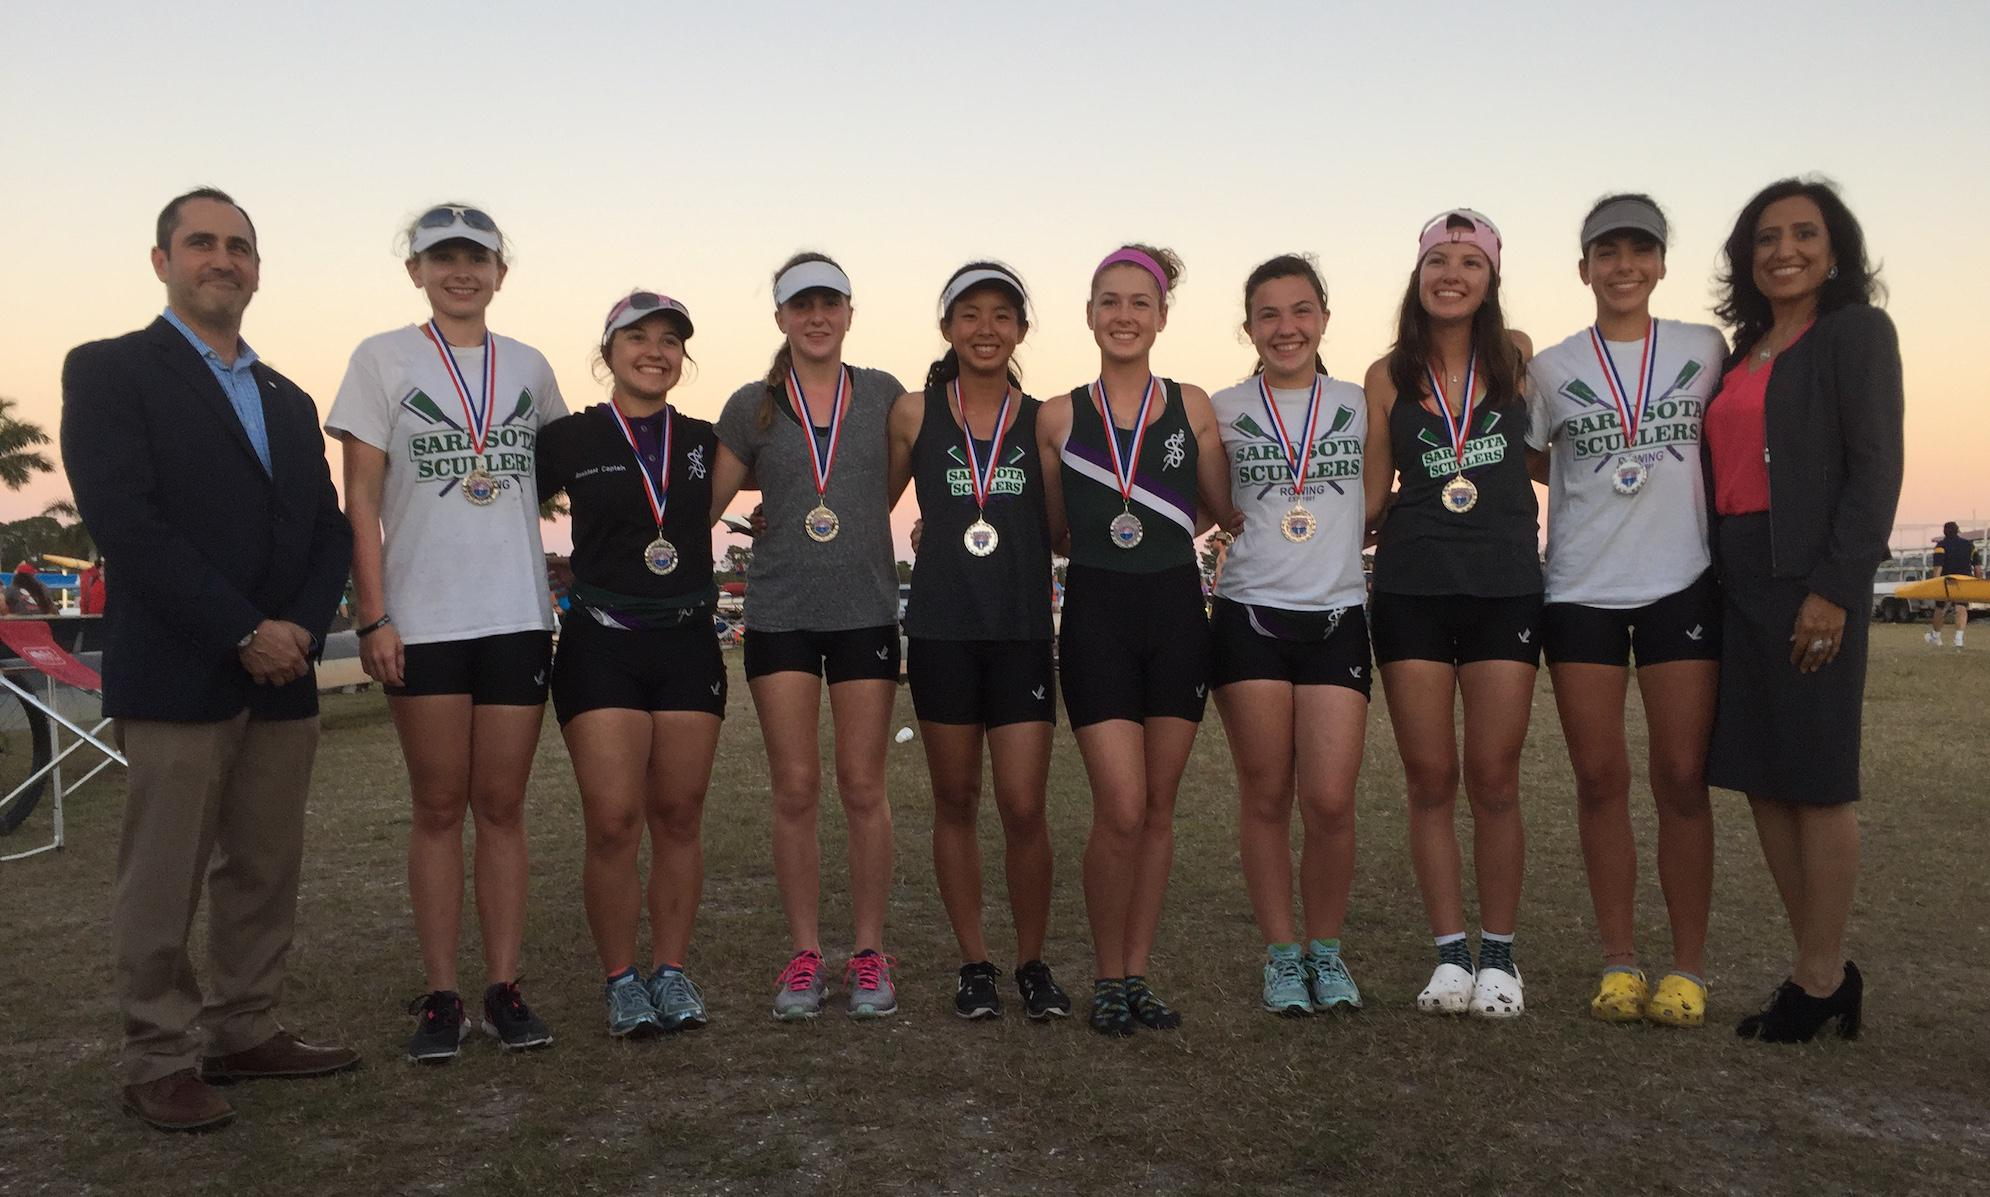 Sarasota Scullers Rowers Earned 13 Medals at the Sarasota Invitational Regatta